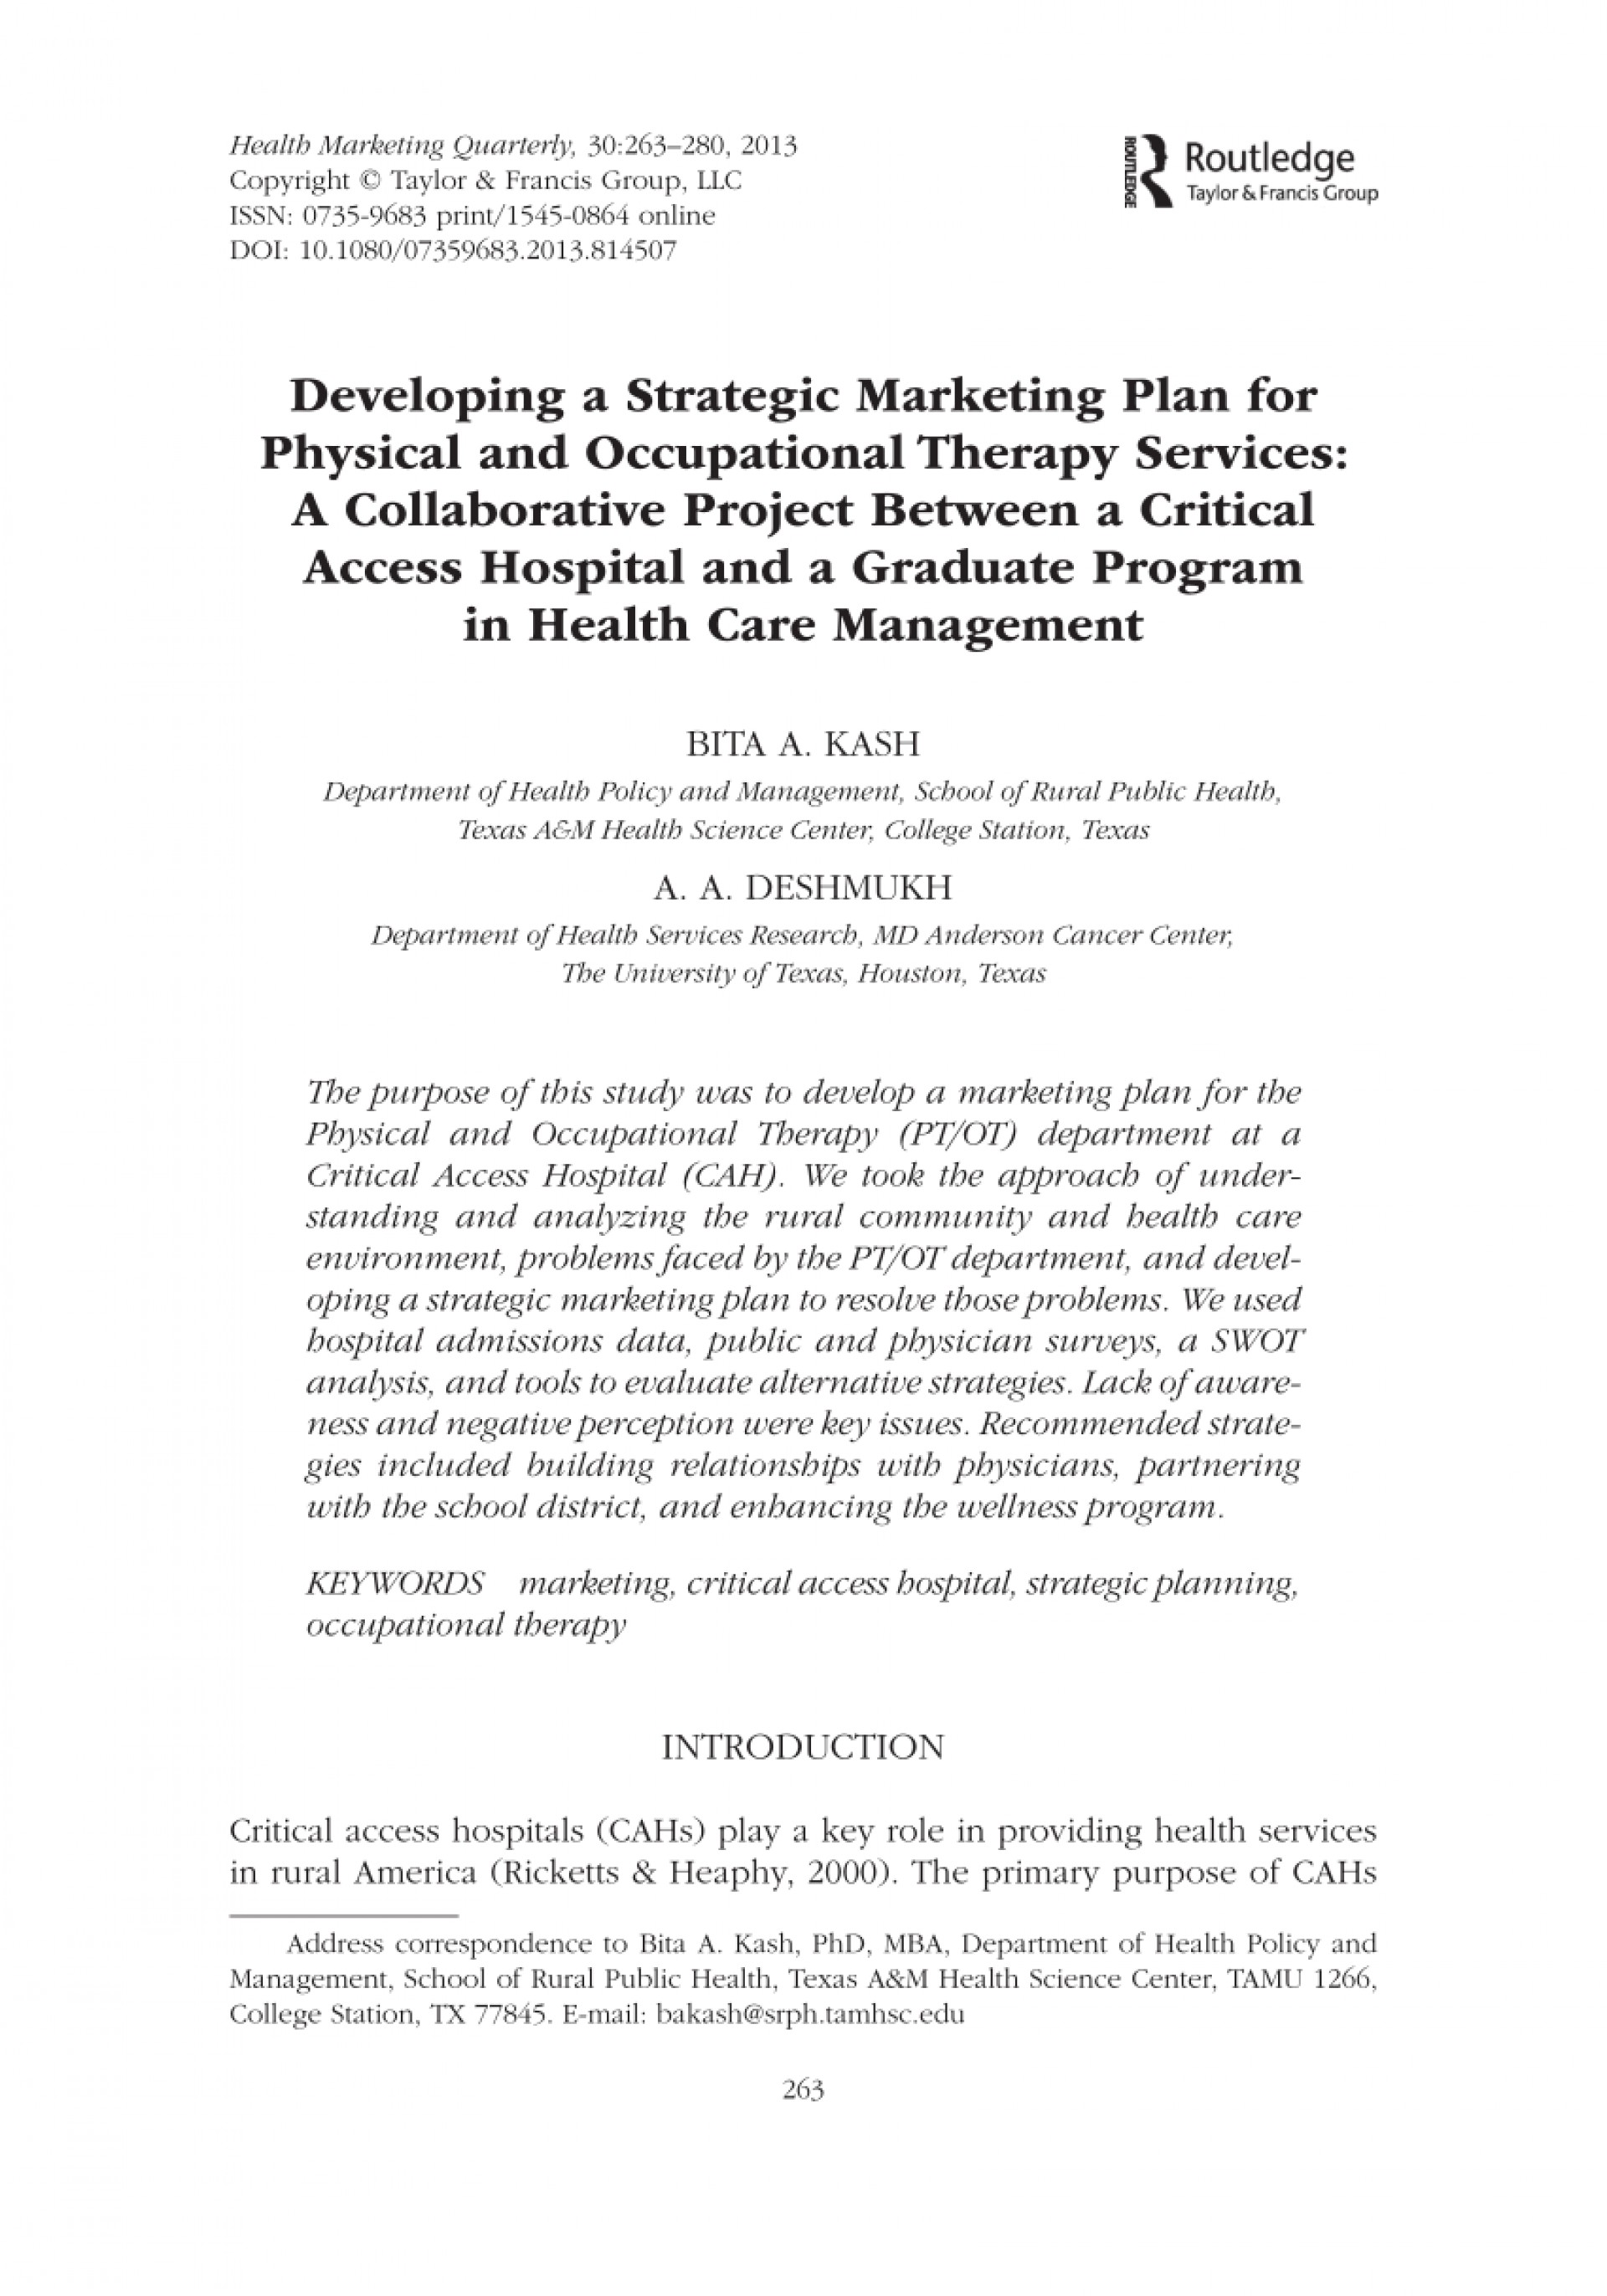 006 Research Paper On Cancer Marketing Plan Mba Image Hd Largepreview For Admission Singular Treatment About Lung Pdf Screenings 1920